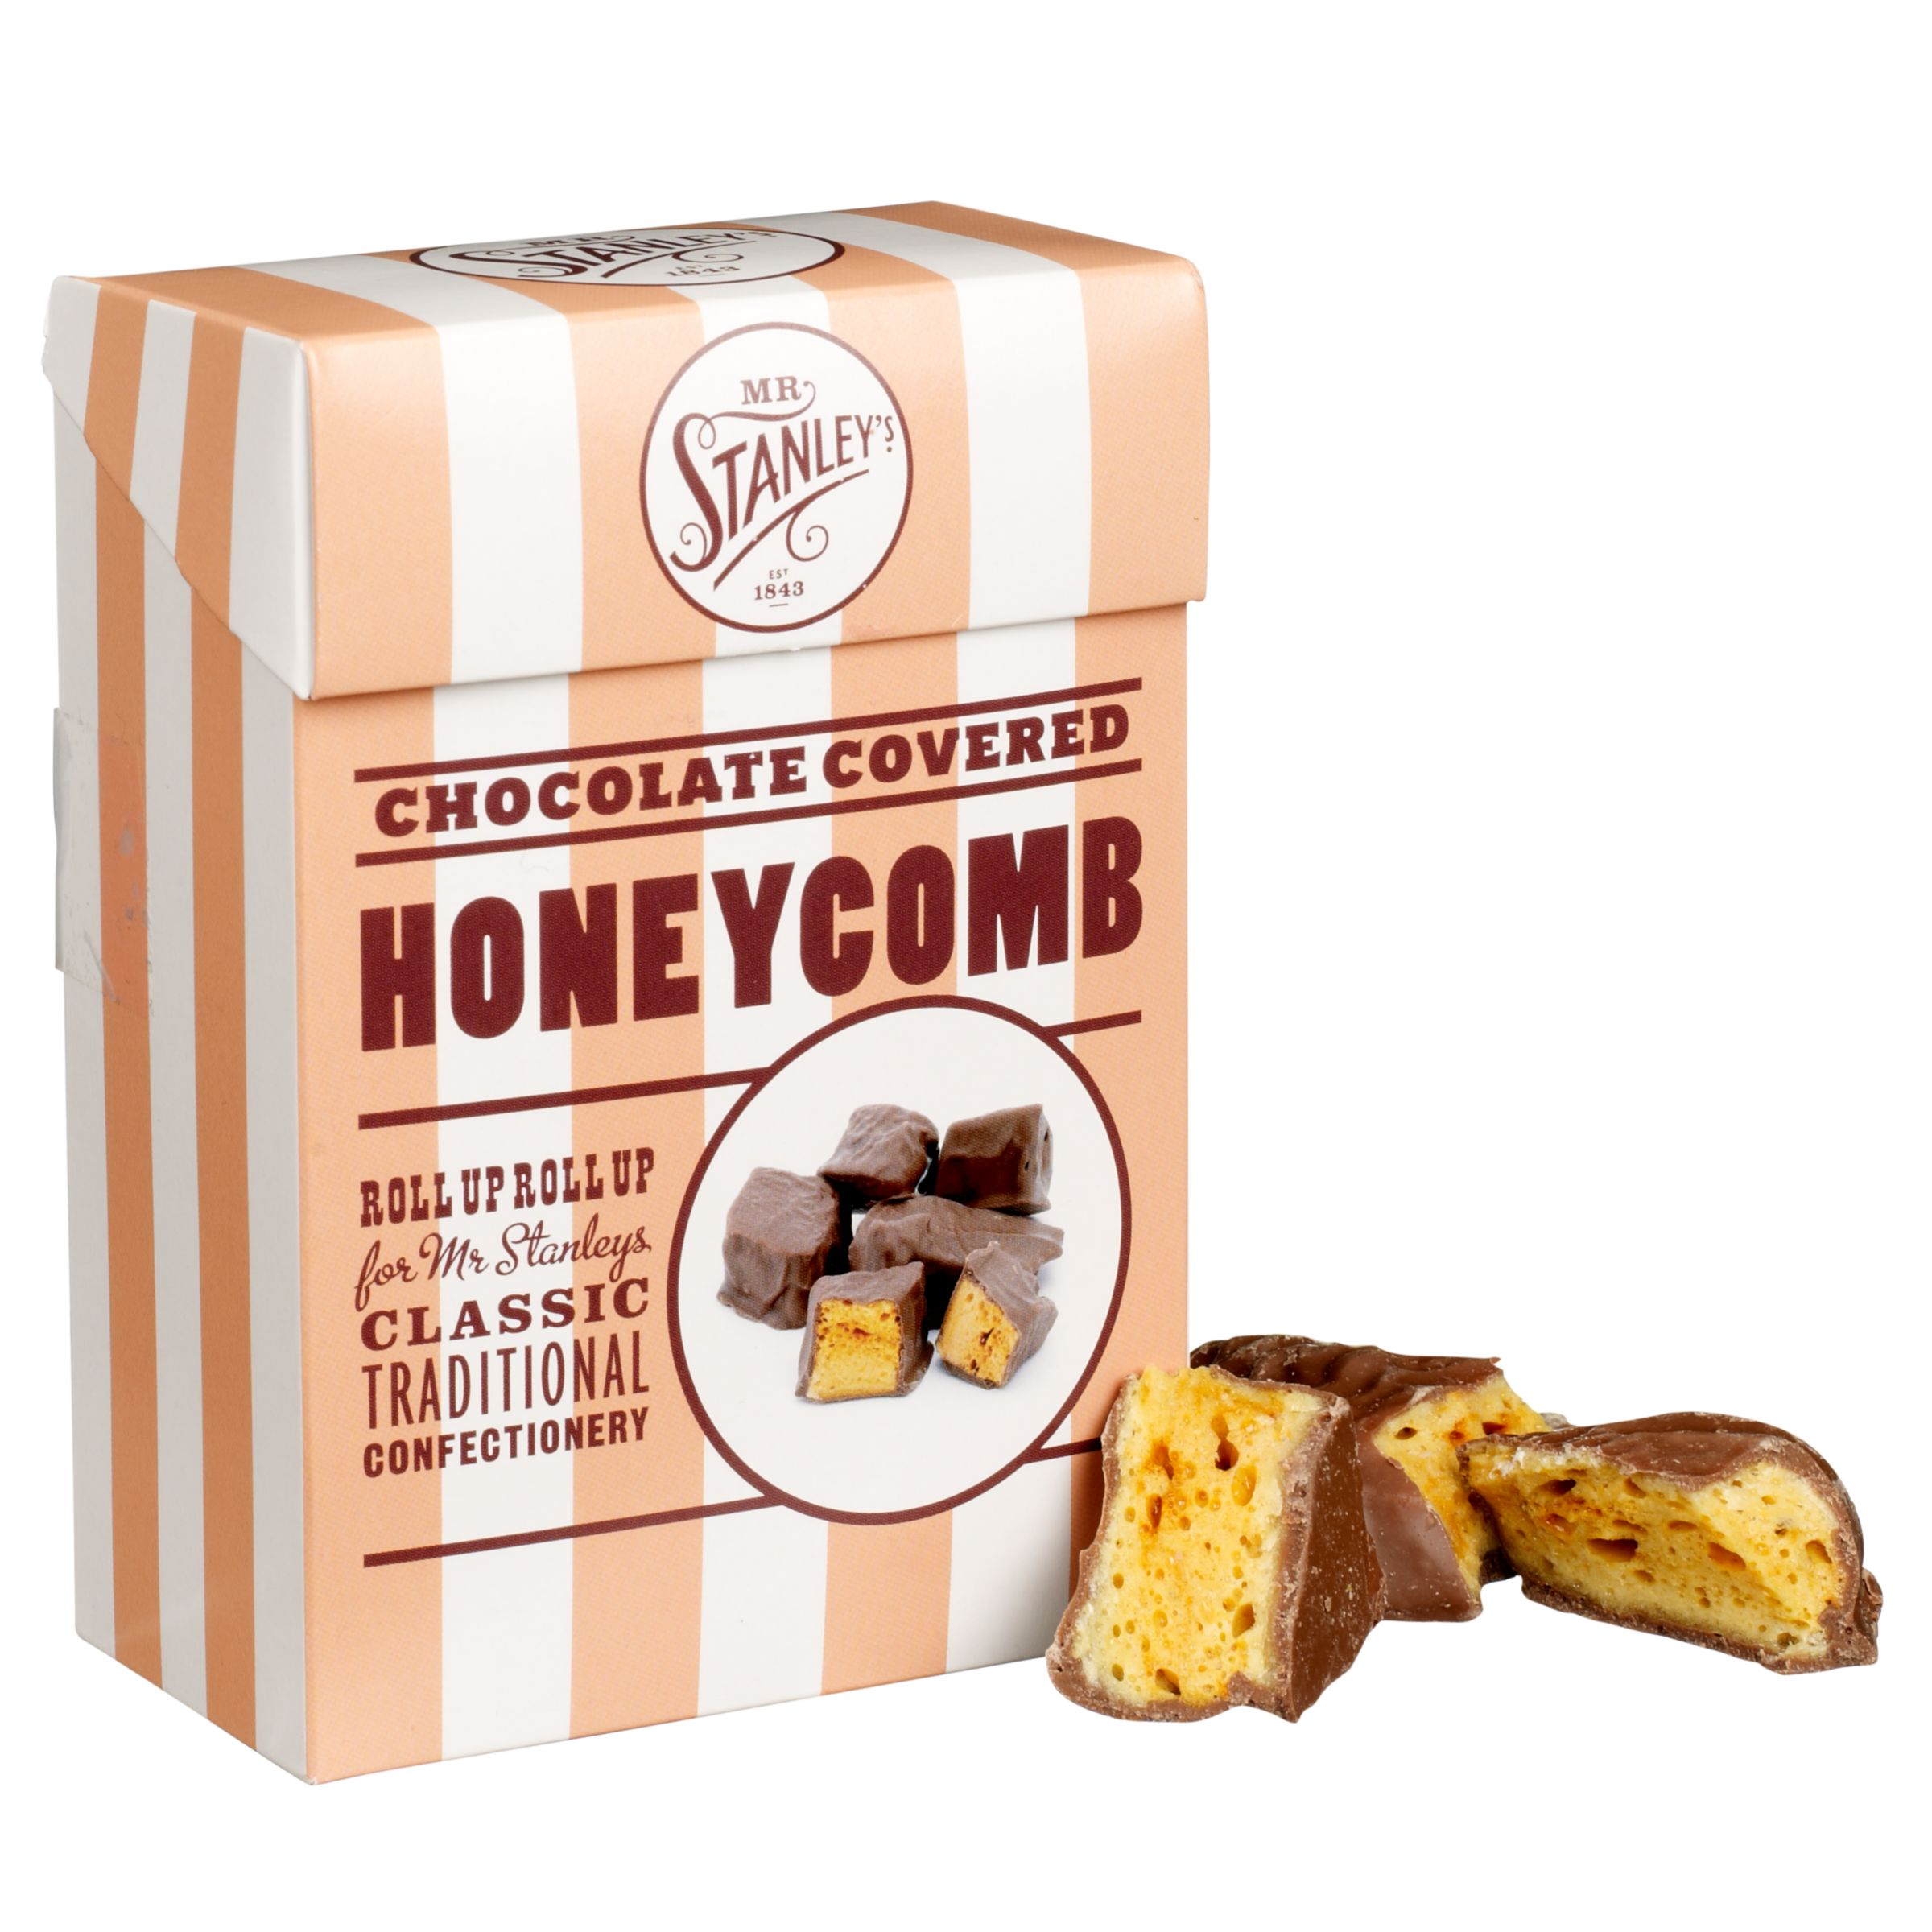 Mr Stanley's Mr Stanley's Quality Chocolate Covered Honeycomb, 150g